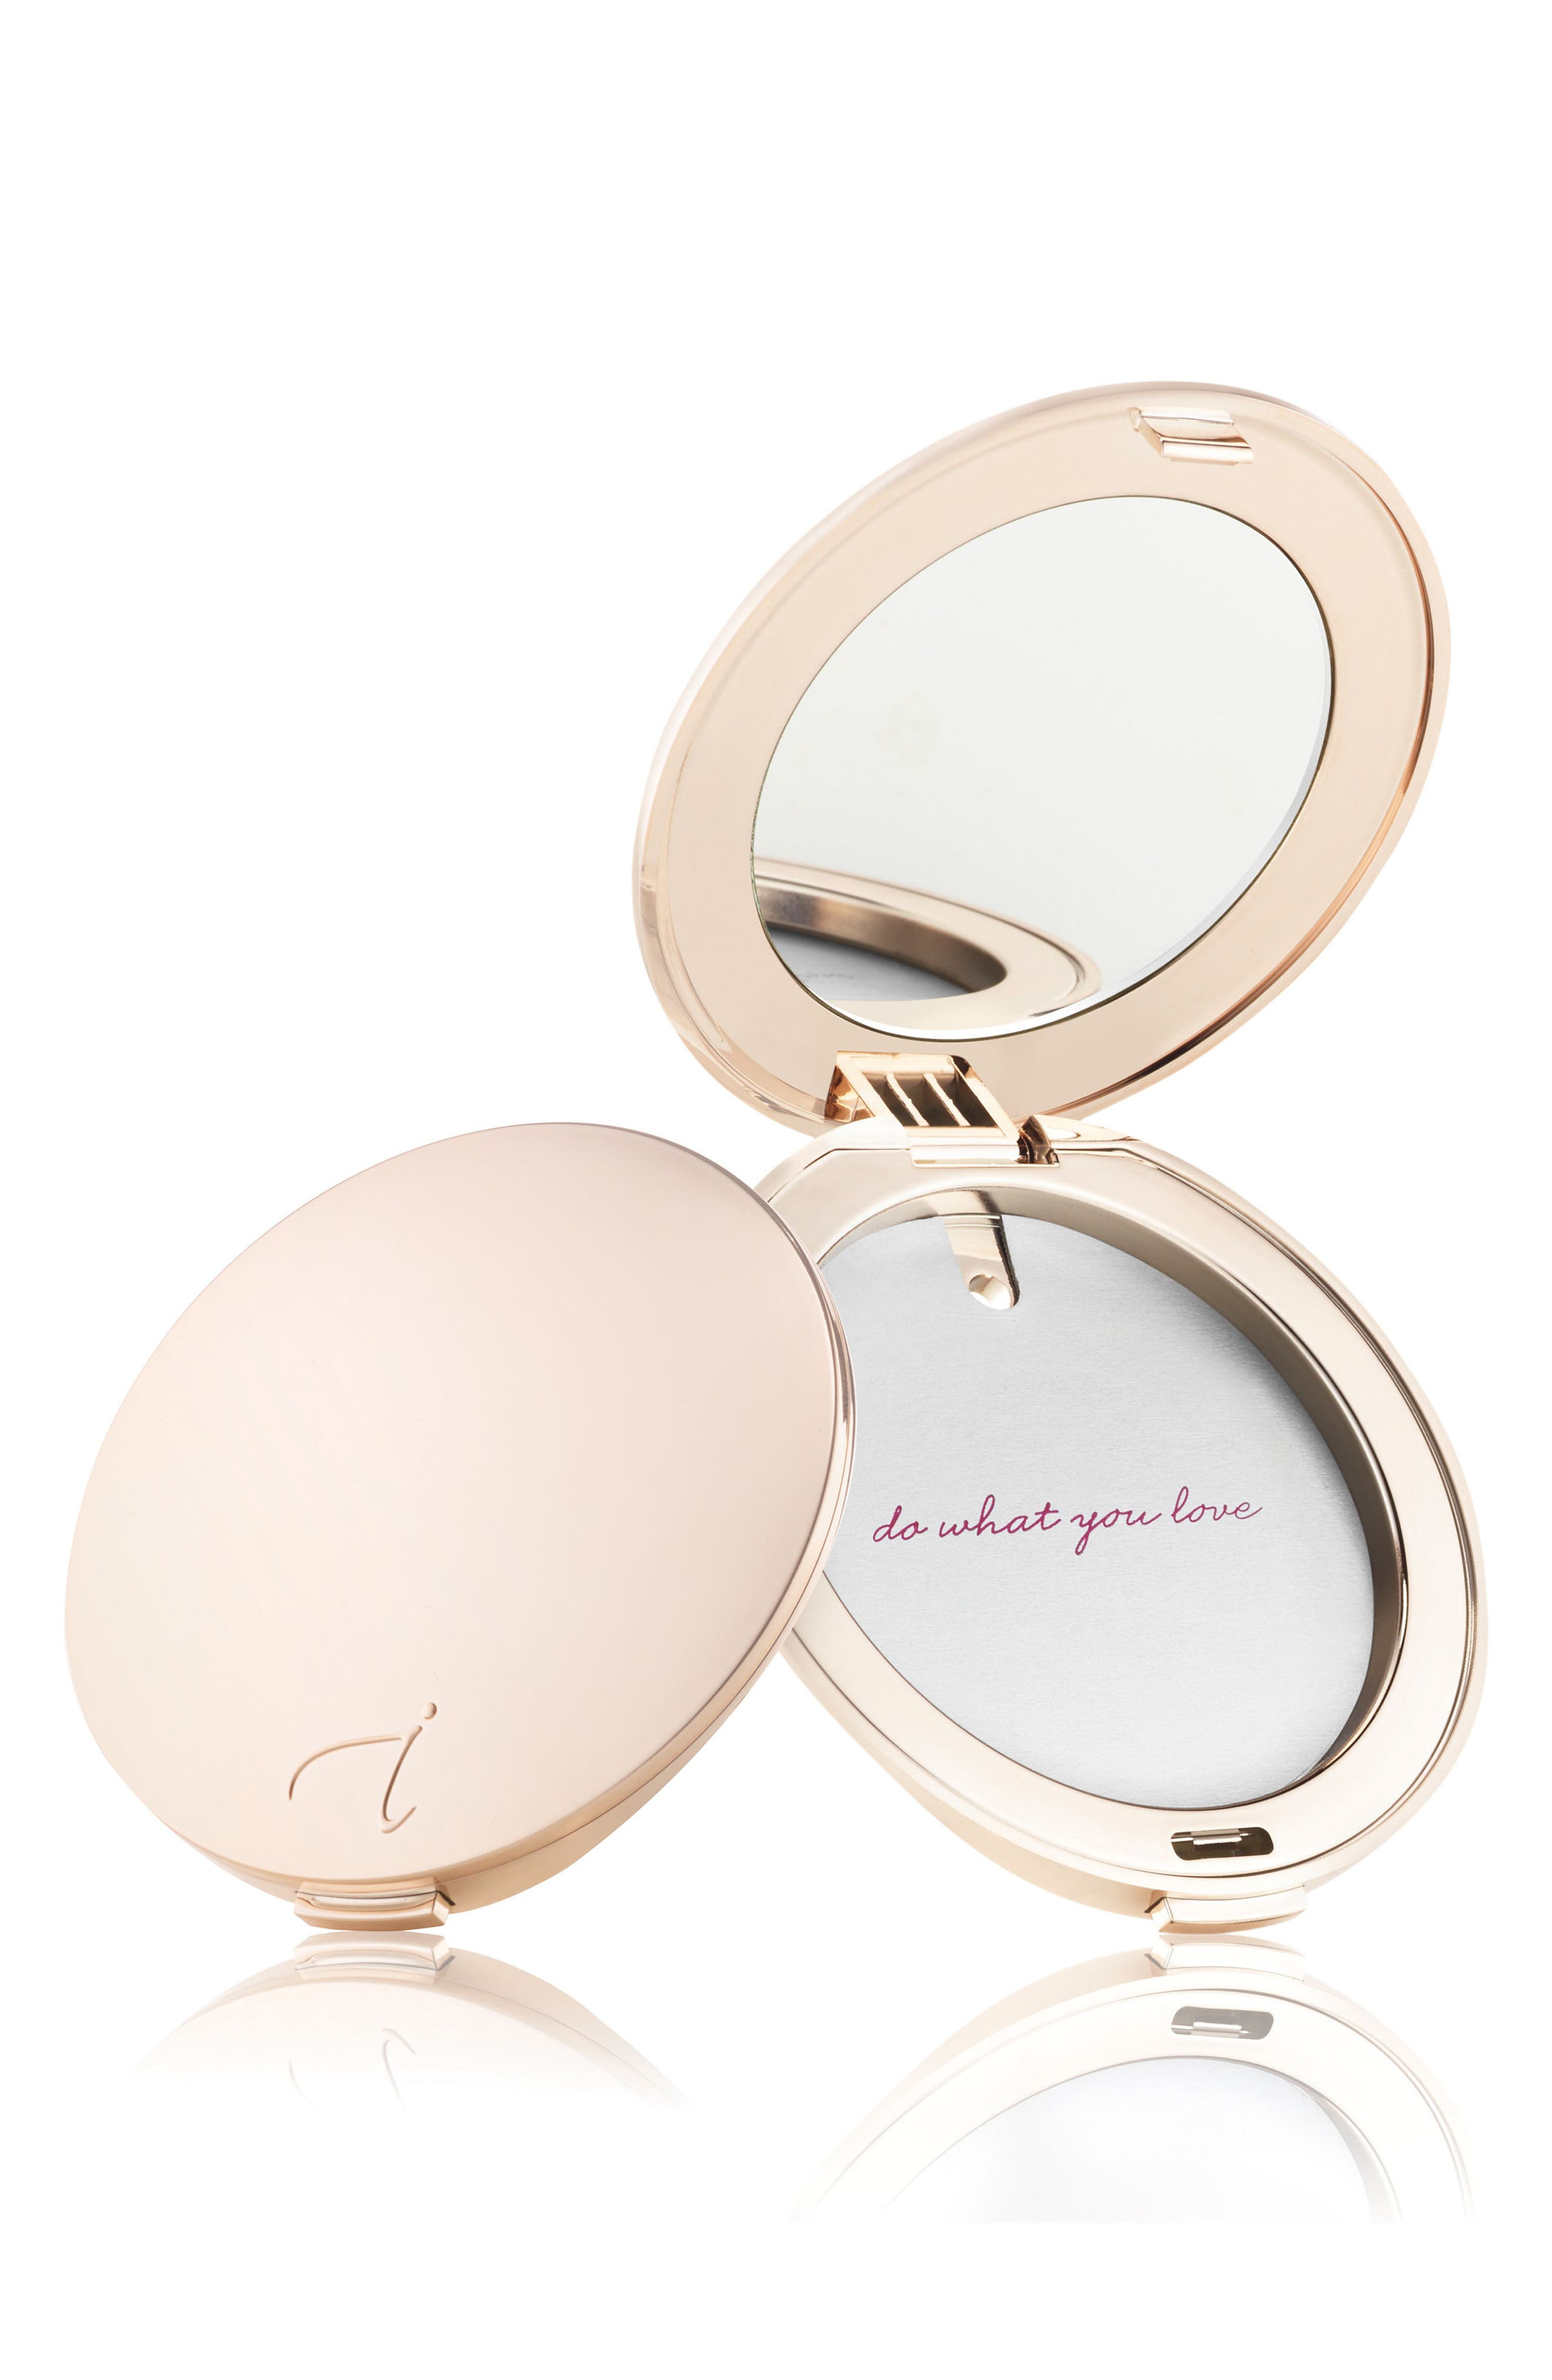 Main Image - jane iredale Refillable Compact